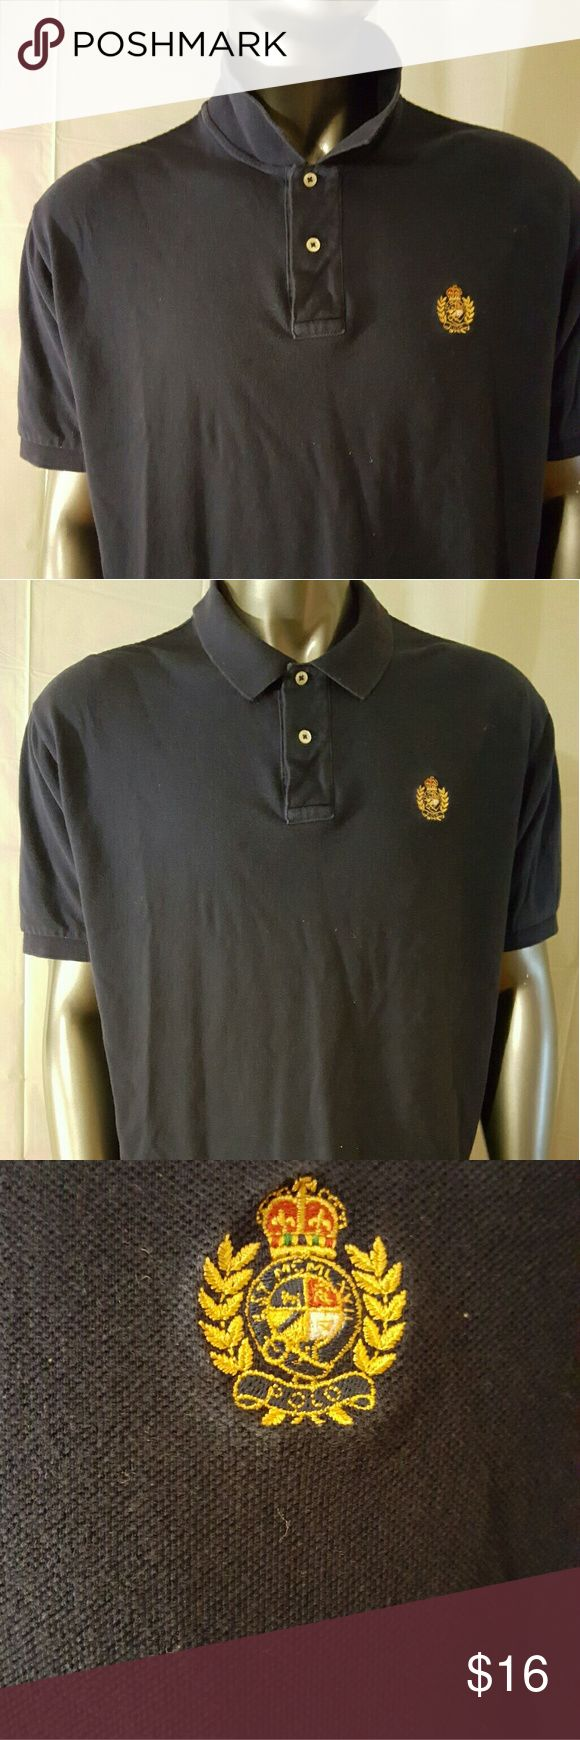 Polo Ralph Lauren  Mens Shirt  1X Large XL Polo Ralph Lauren  Mens Shirt  1X Large XL  Navy Blue  Special logo   Good Condition Polo by Ralph Lauren Shirts Polos